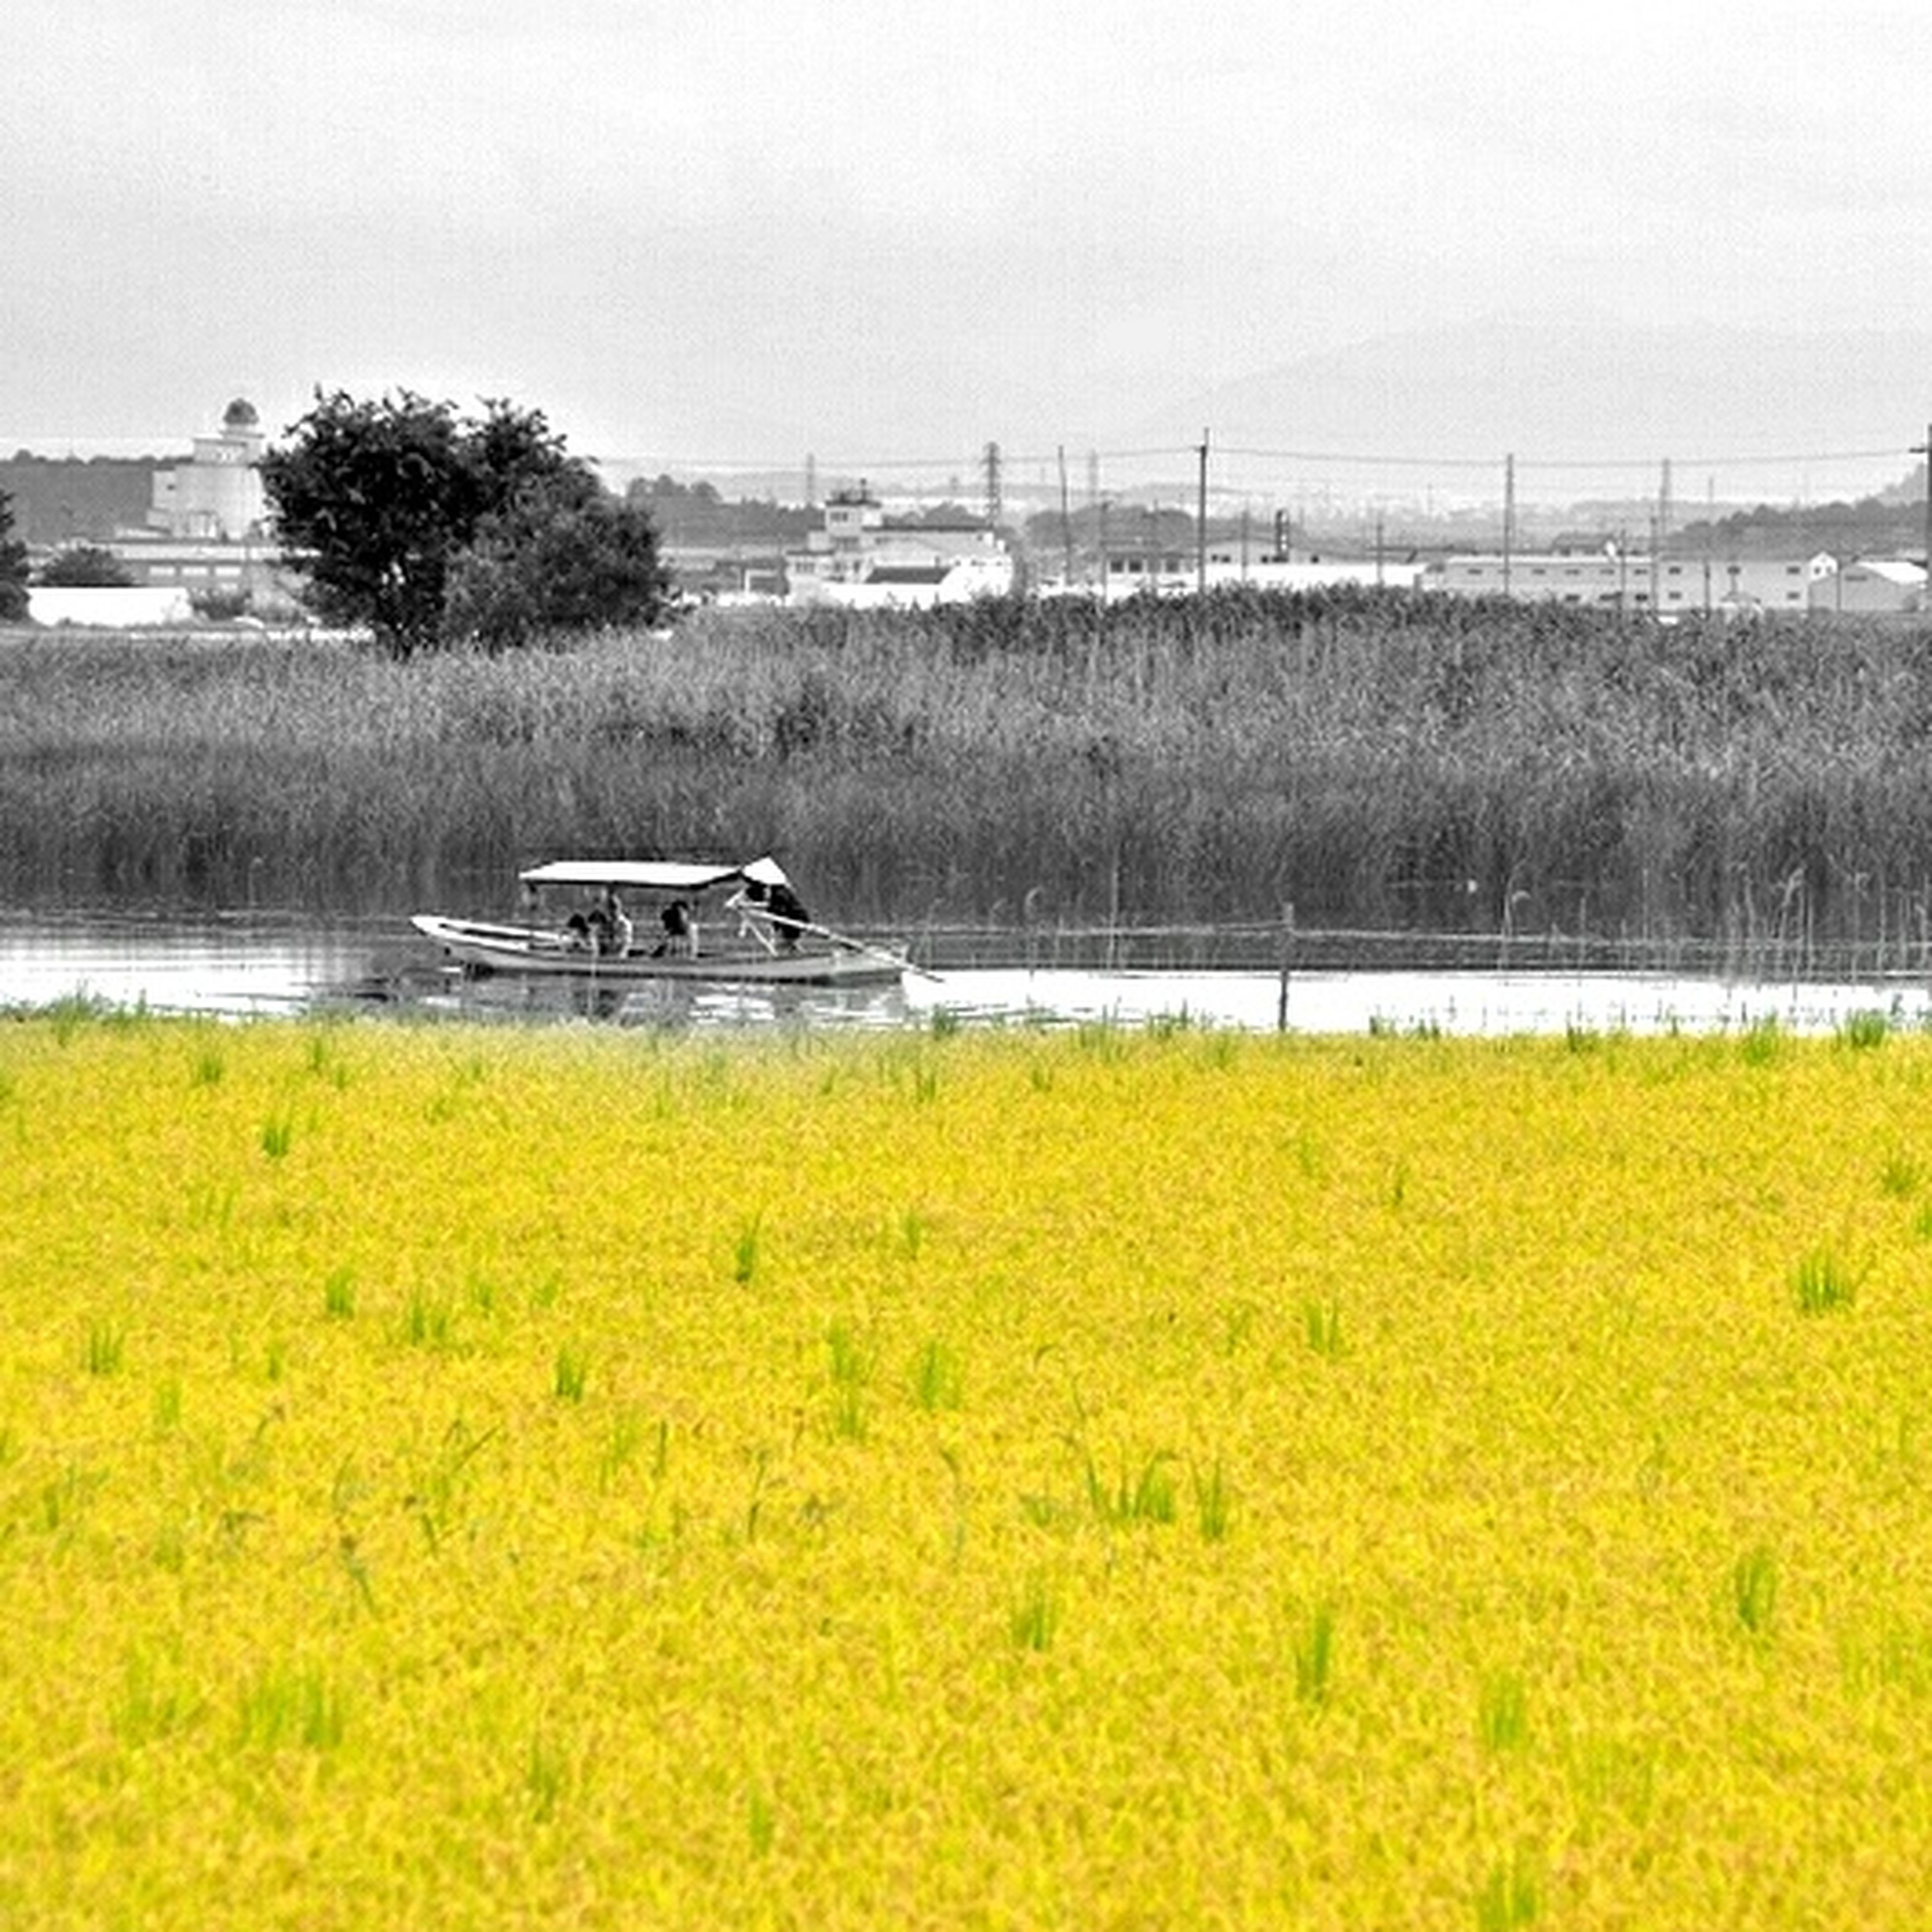 transportation, field, grass, sky, mode of transport, tranquil scene, water, landscape, nature, tranquility, growth, rural scene, beauty in nature, plant, yellow, tree, scenics, agriculture, green color, river